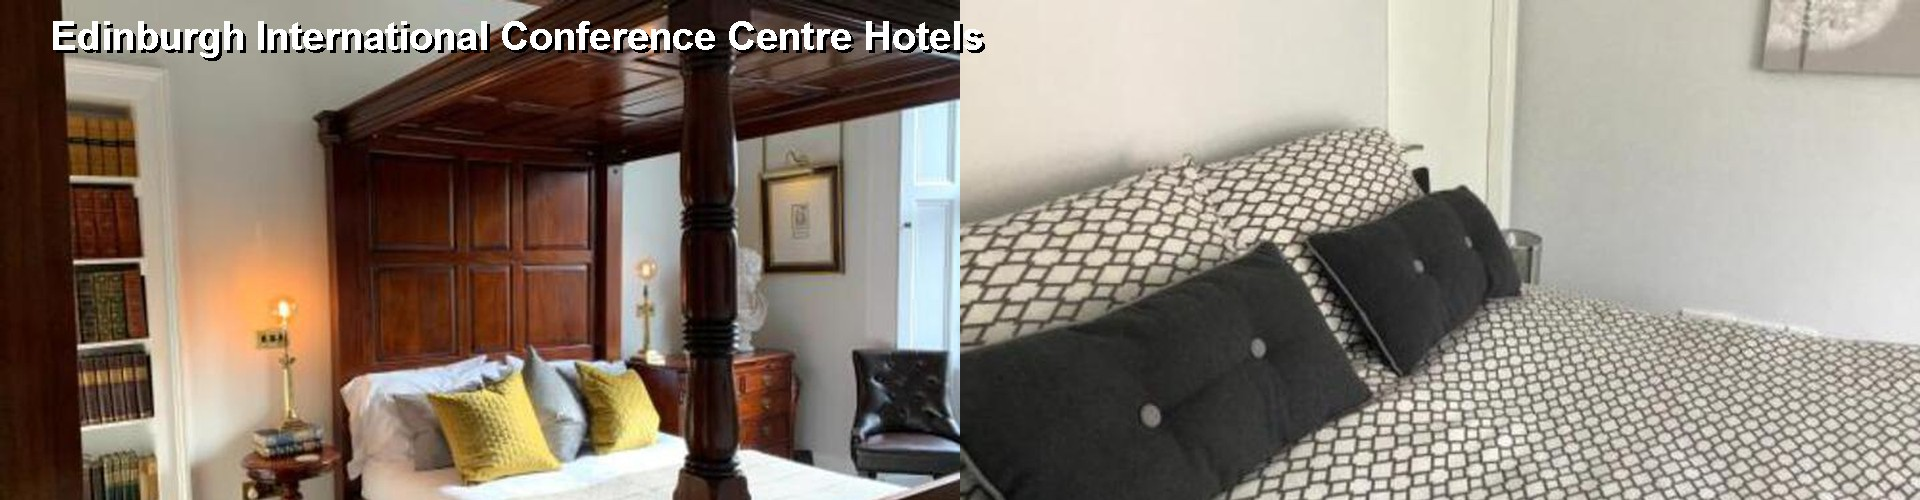 5 Best Hotels near Edinburgh International Conference Centre